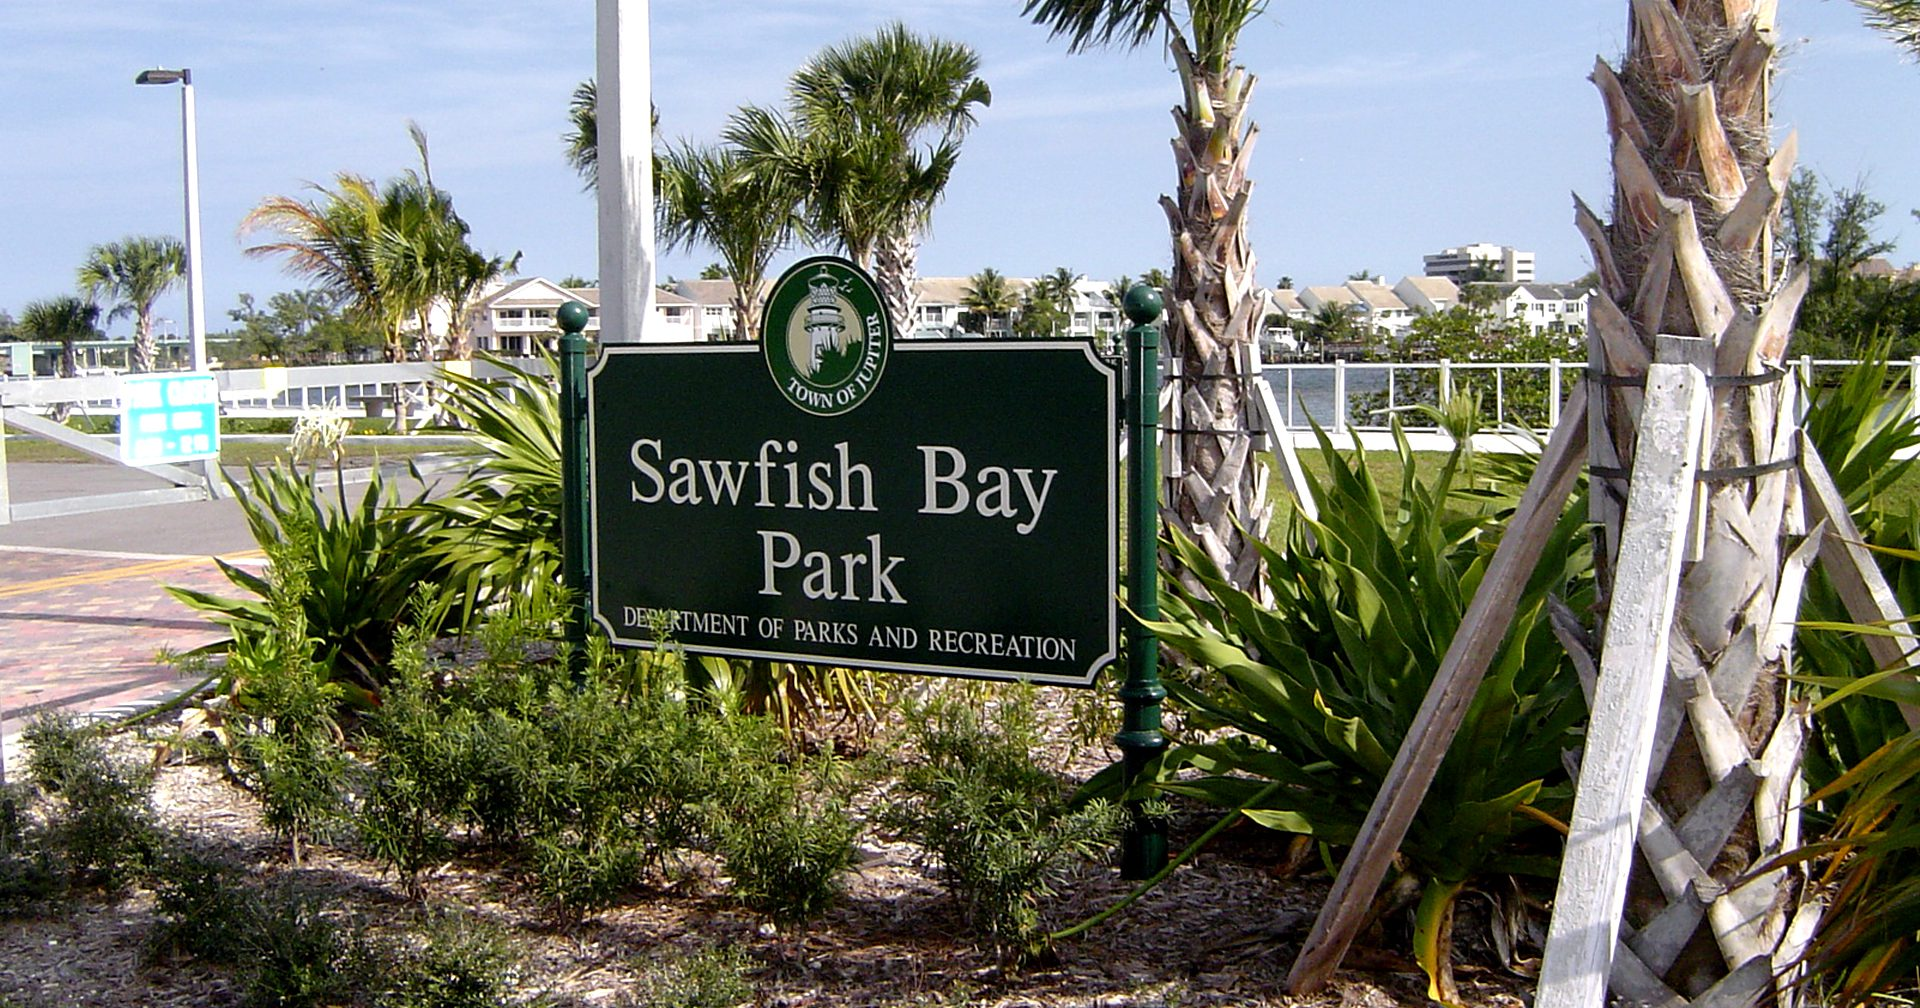 Sawfish Bay Park